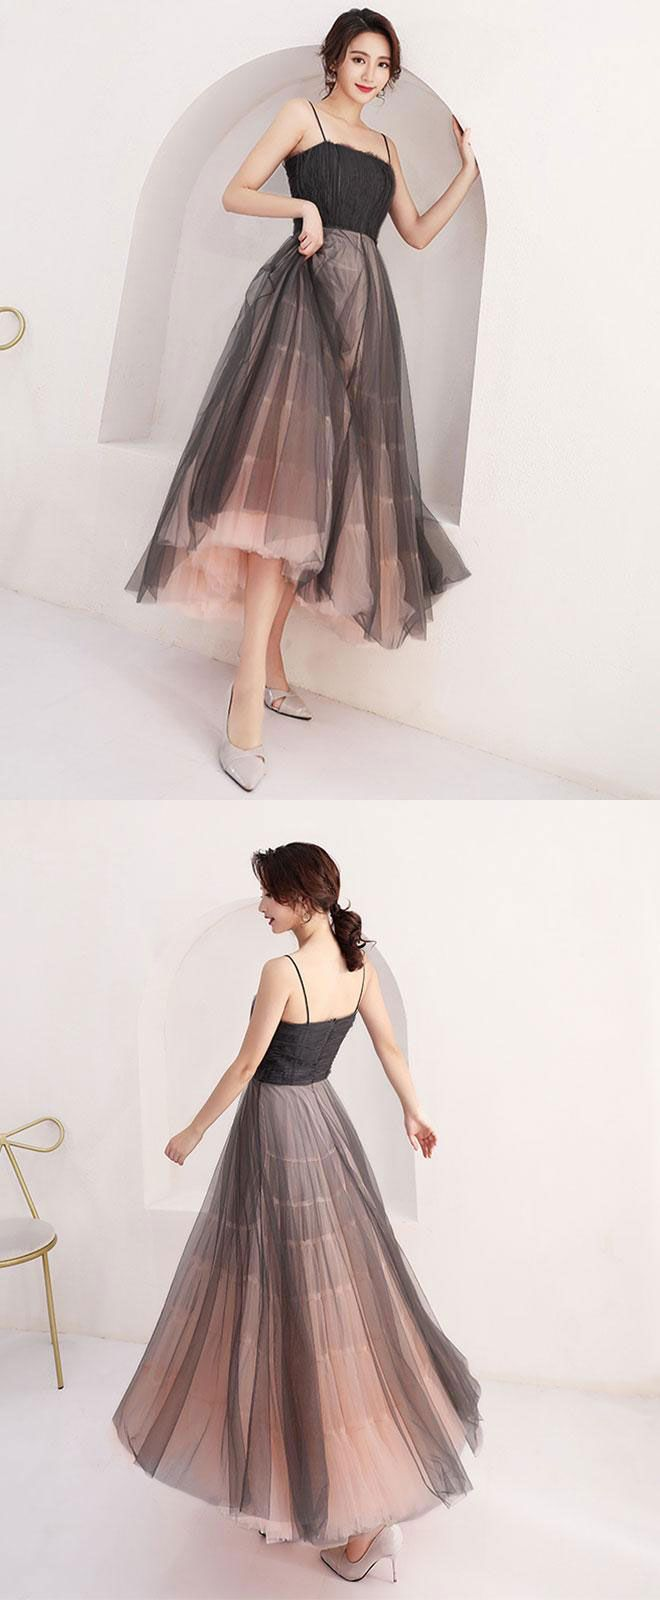 aa8c30137d4 High quality black tulle short prom dress